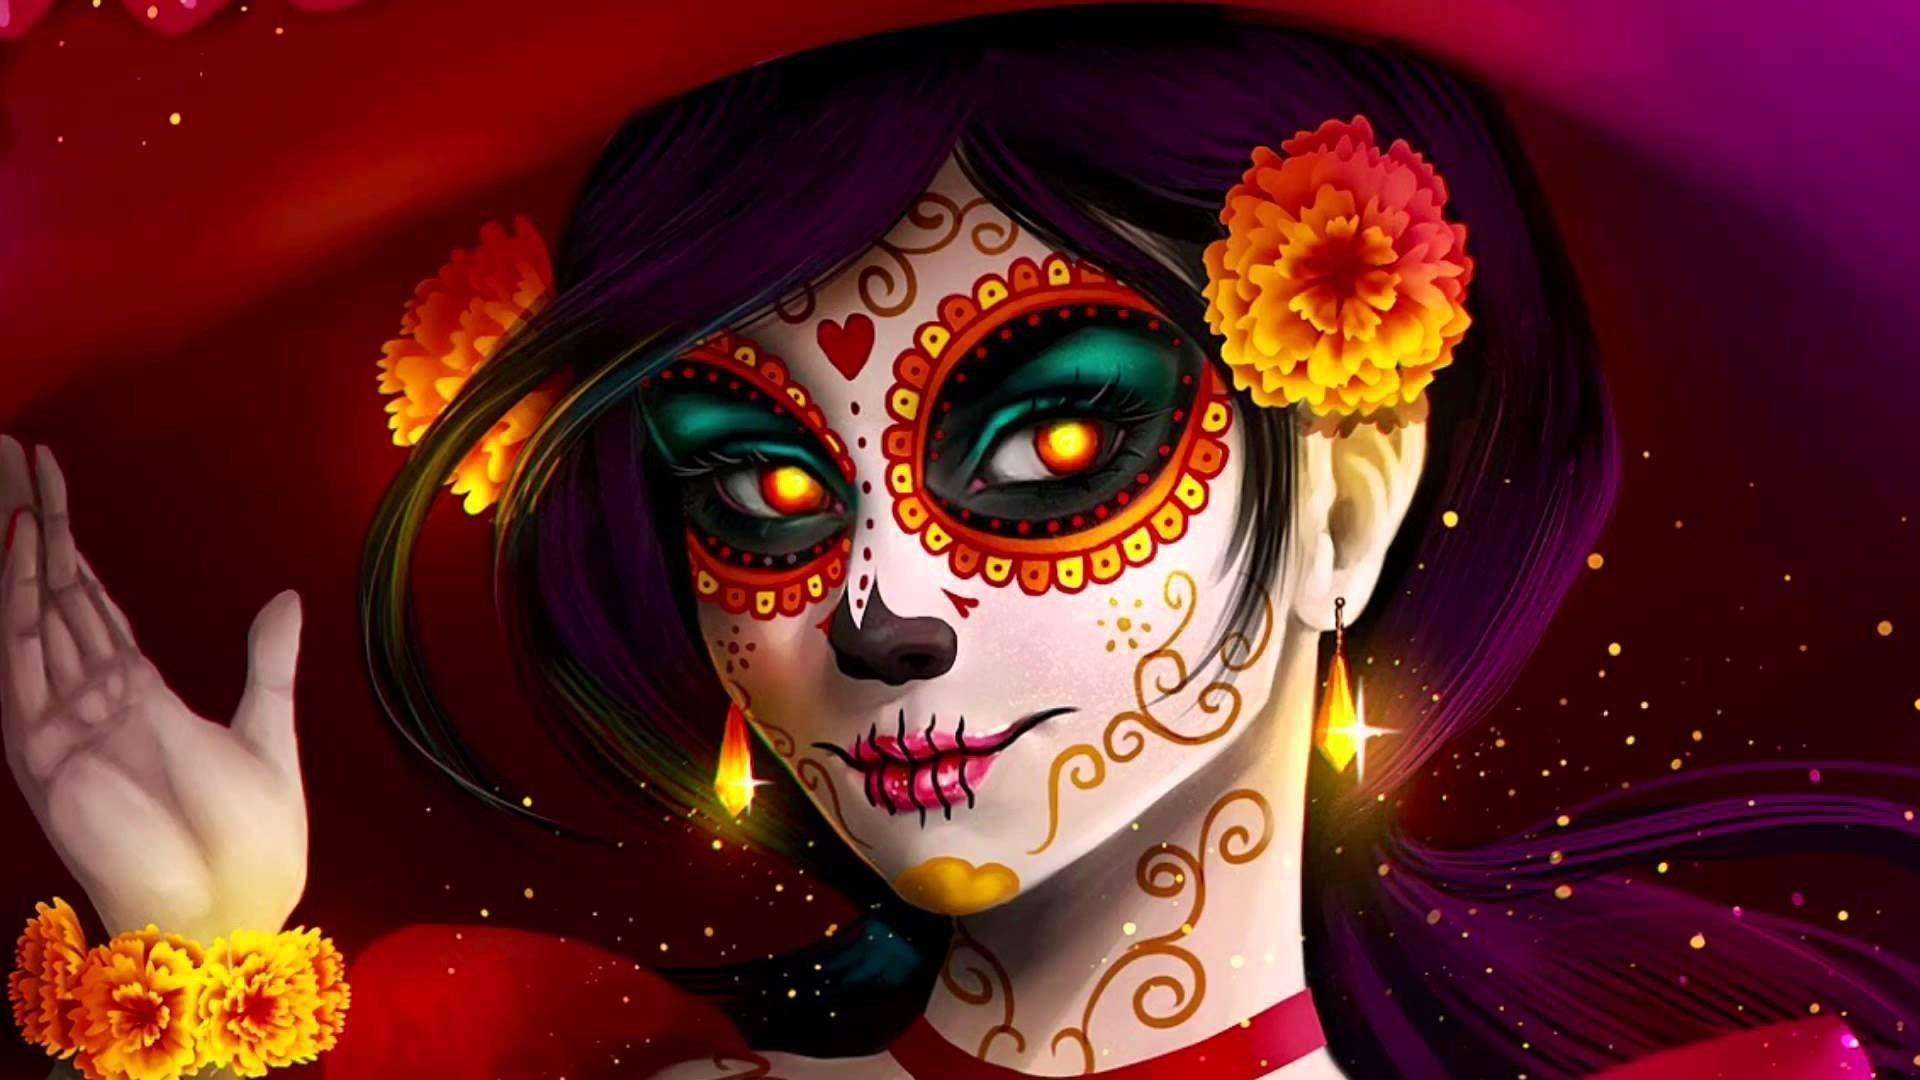 Catrina Wallpapers - Wallpaper Cave